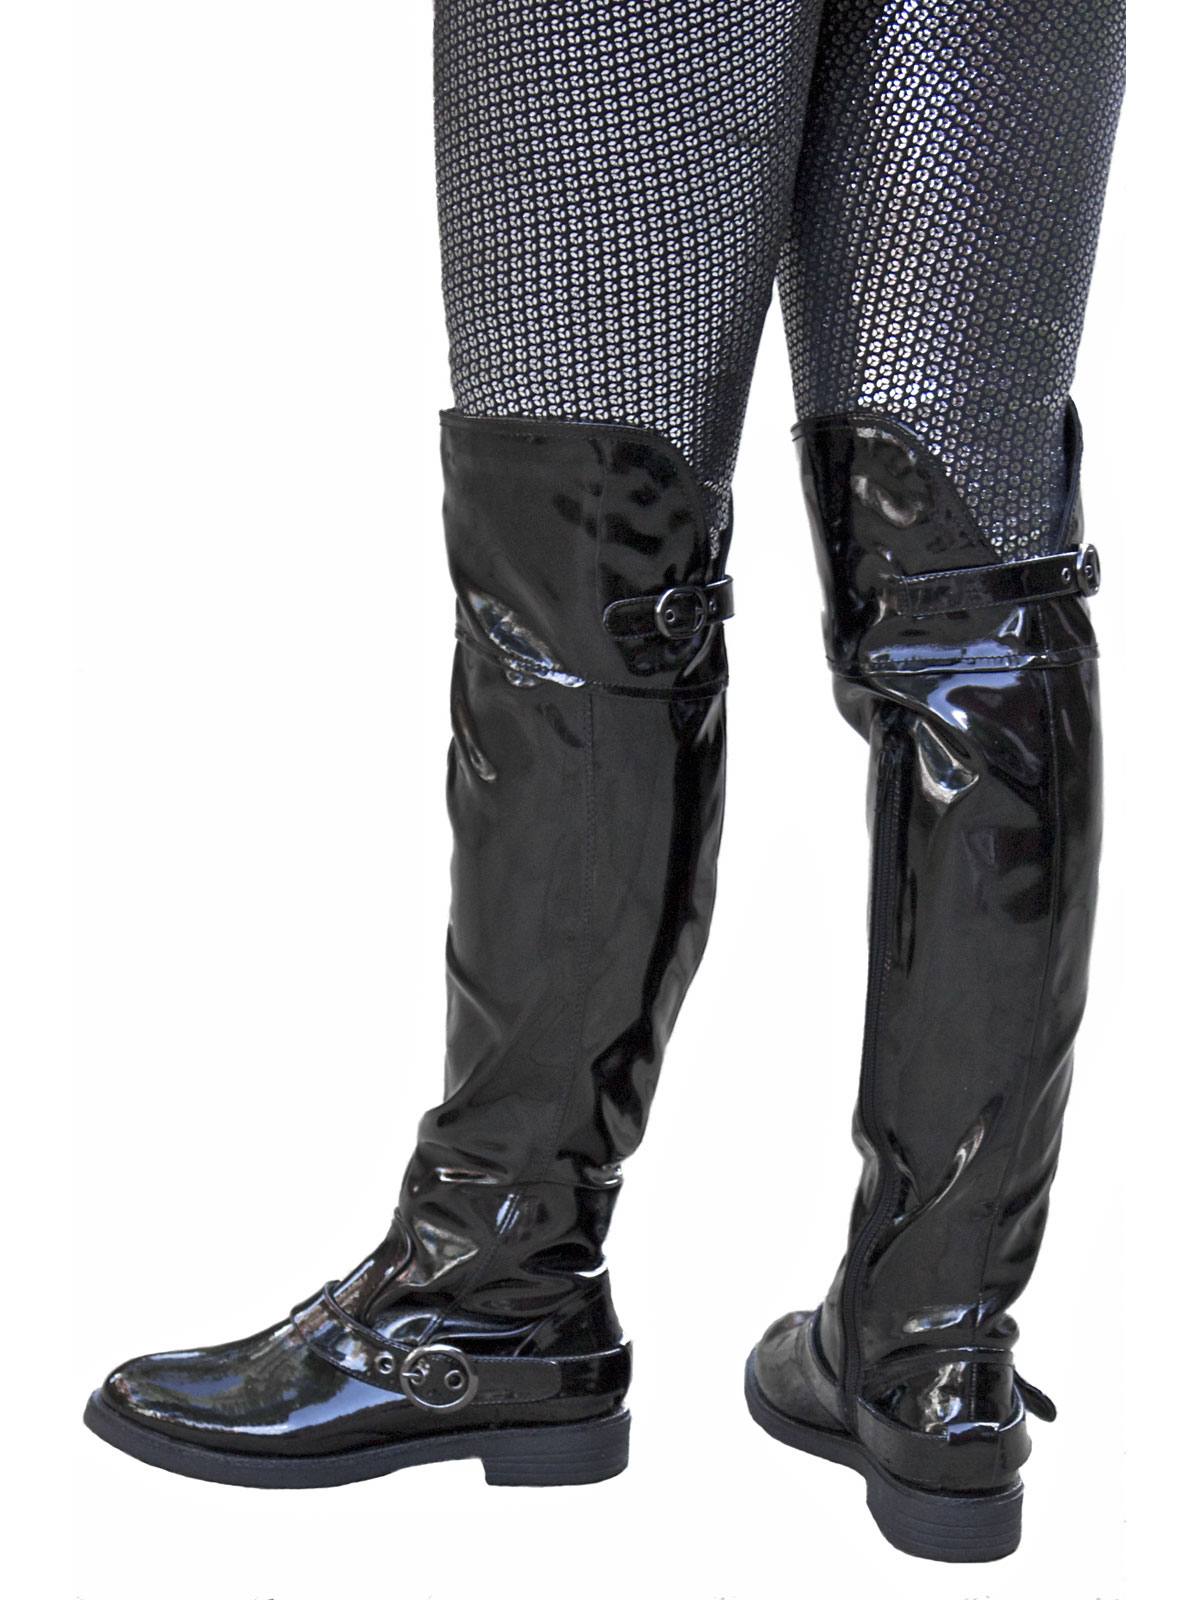 Lunar Women's Black Patent Flat Heel Over The Knee Boots